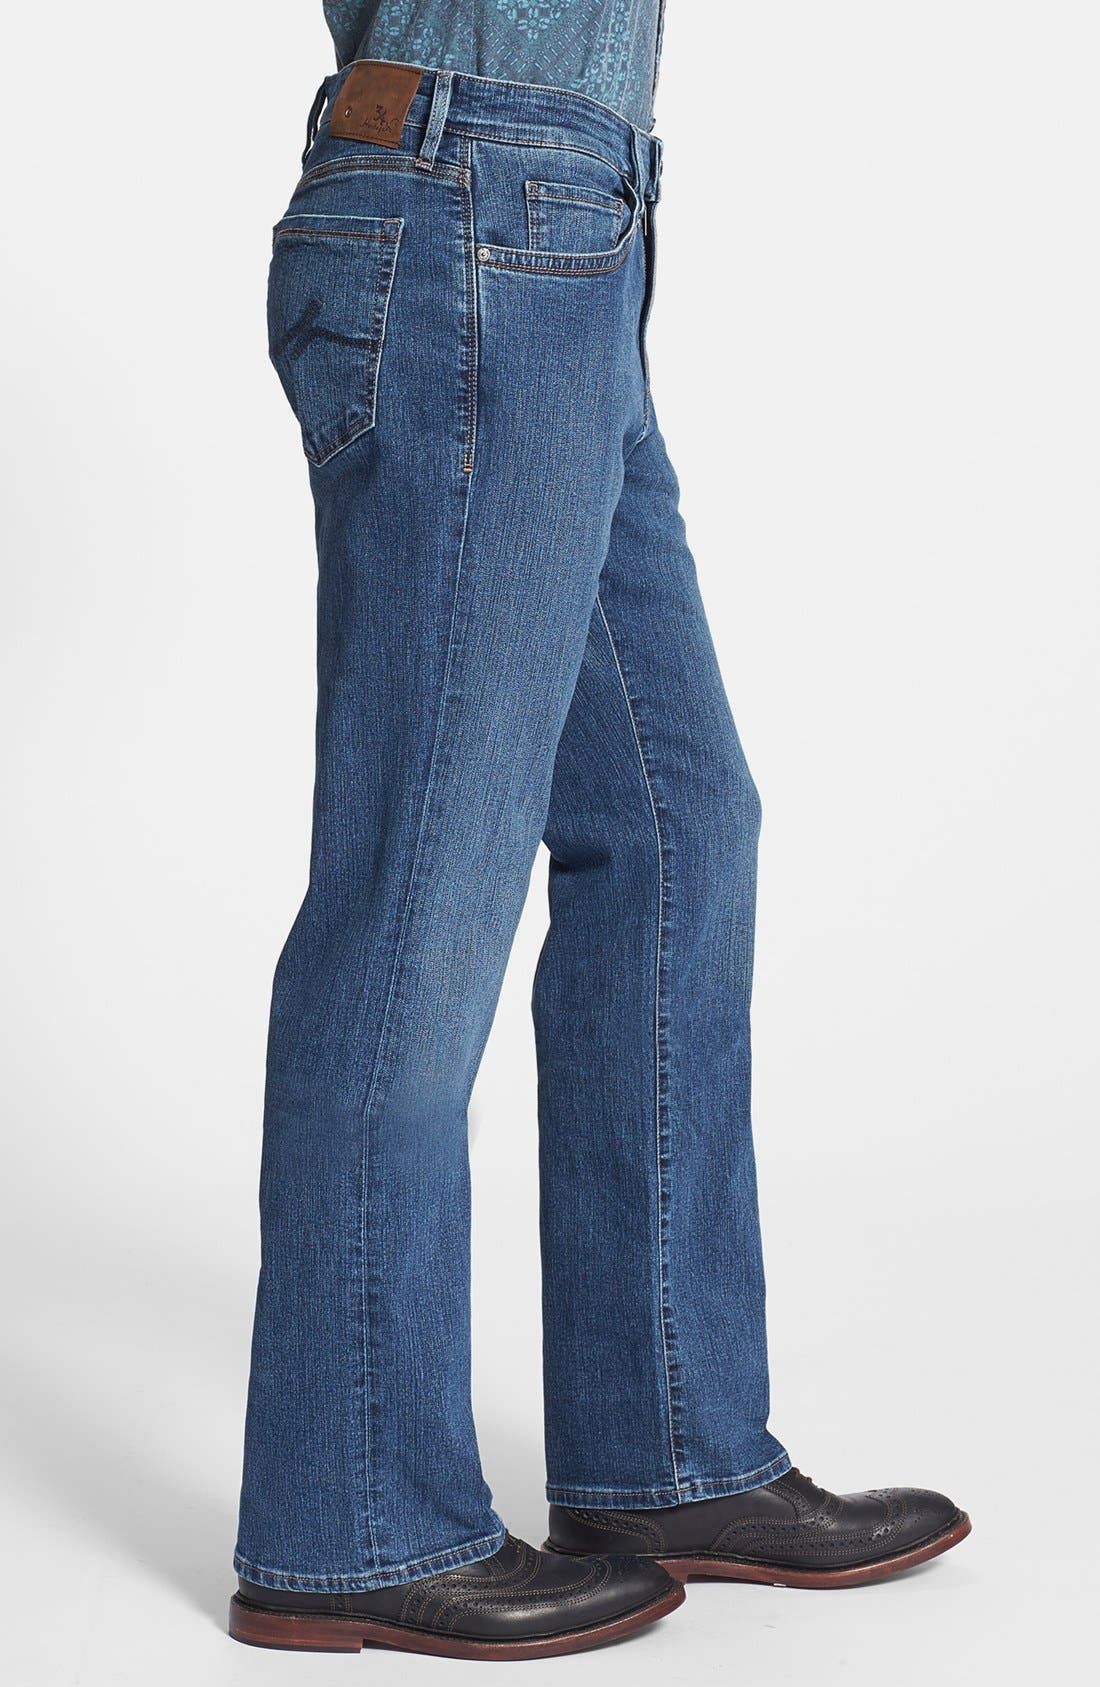 Charisma Classic Relaxed Fit Jeans,                             Alternate thumbnail 4, color,                             Mid Comfort